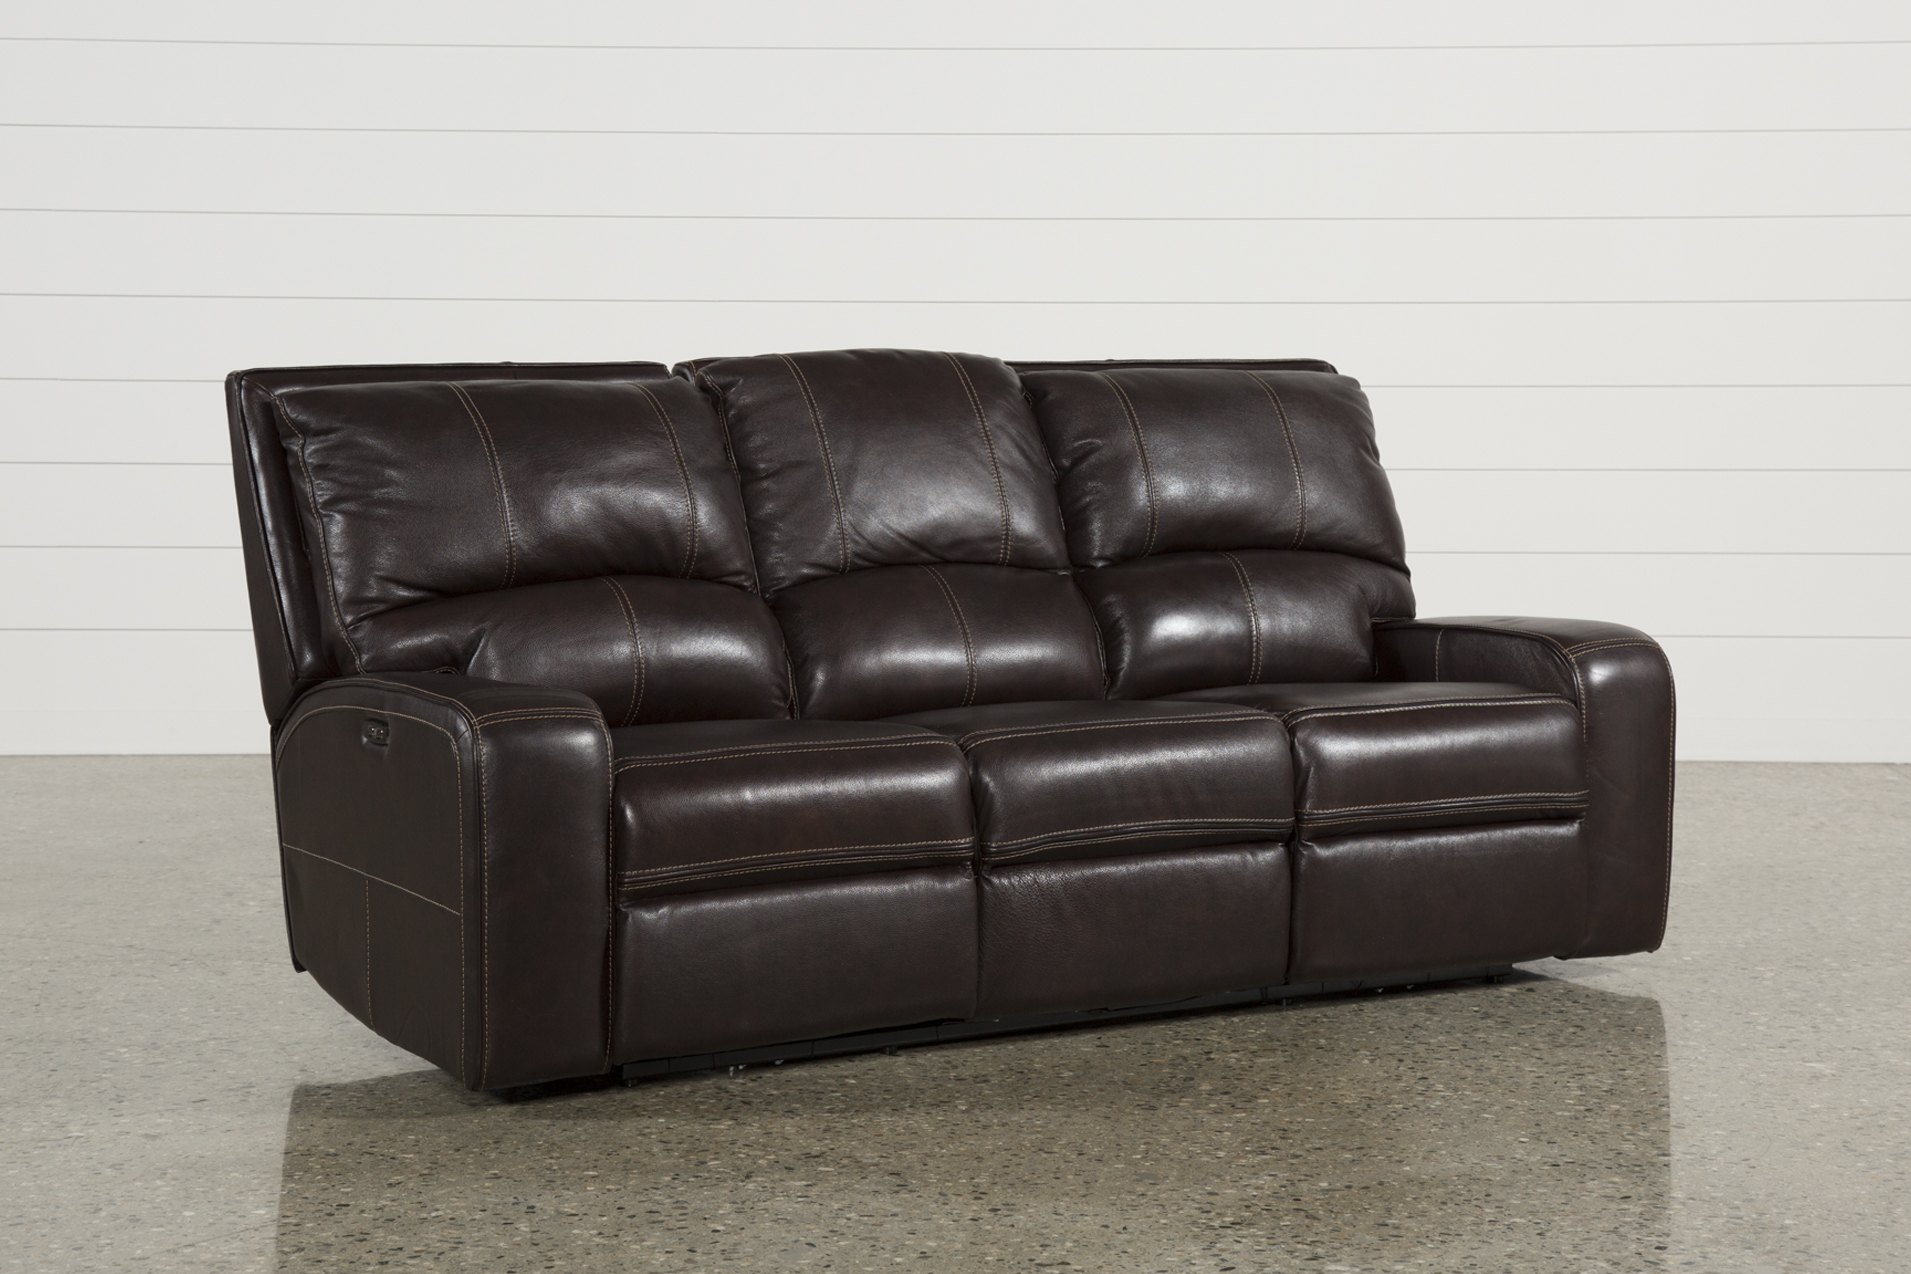 Clyde Dark Brown Leather Power Reclining Sofa W/Power Headrest U0026 Usb   360